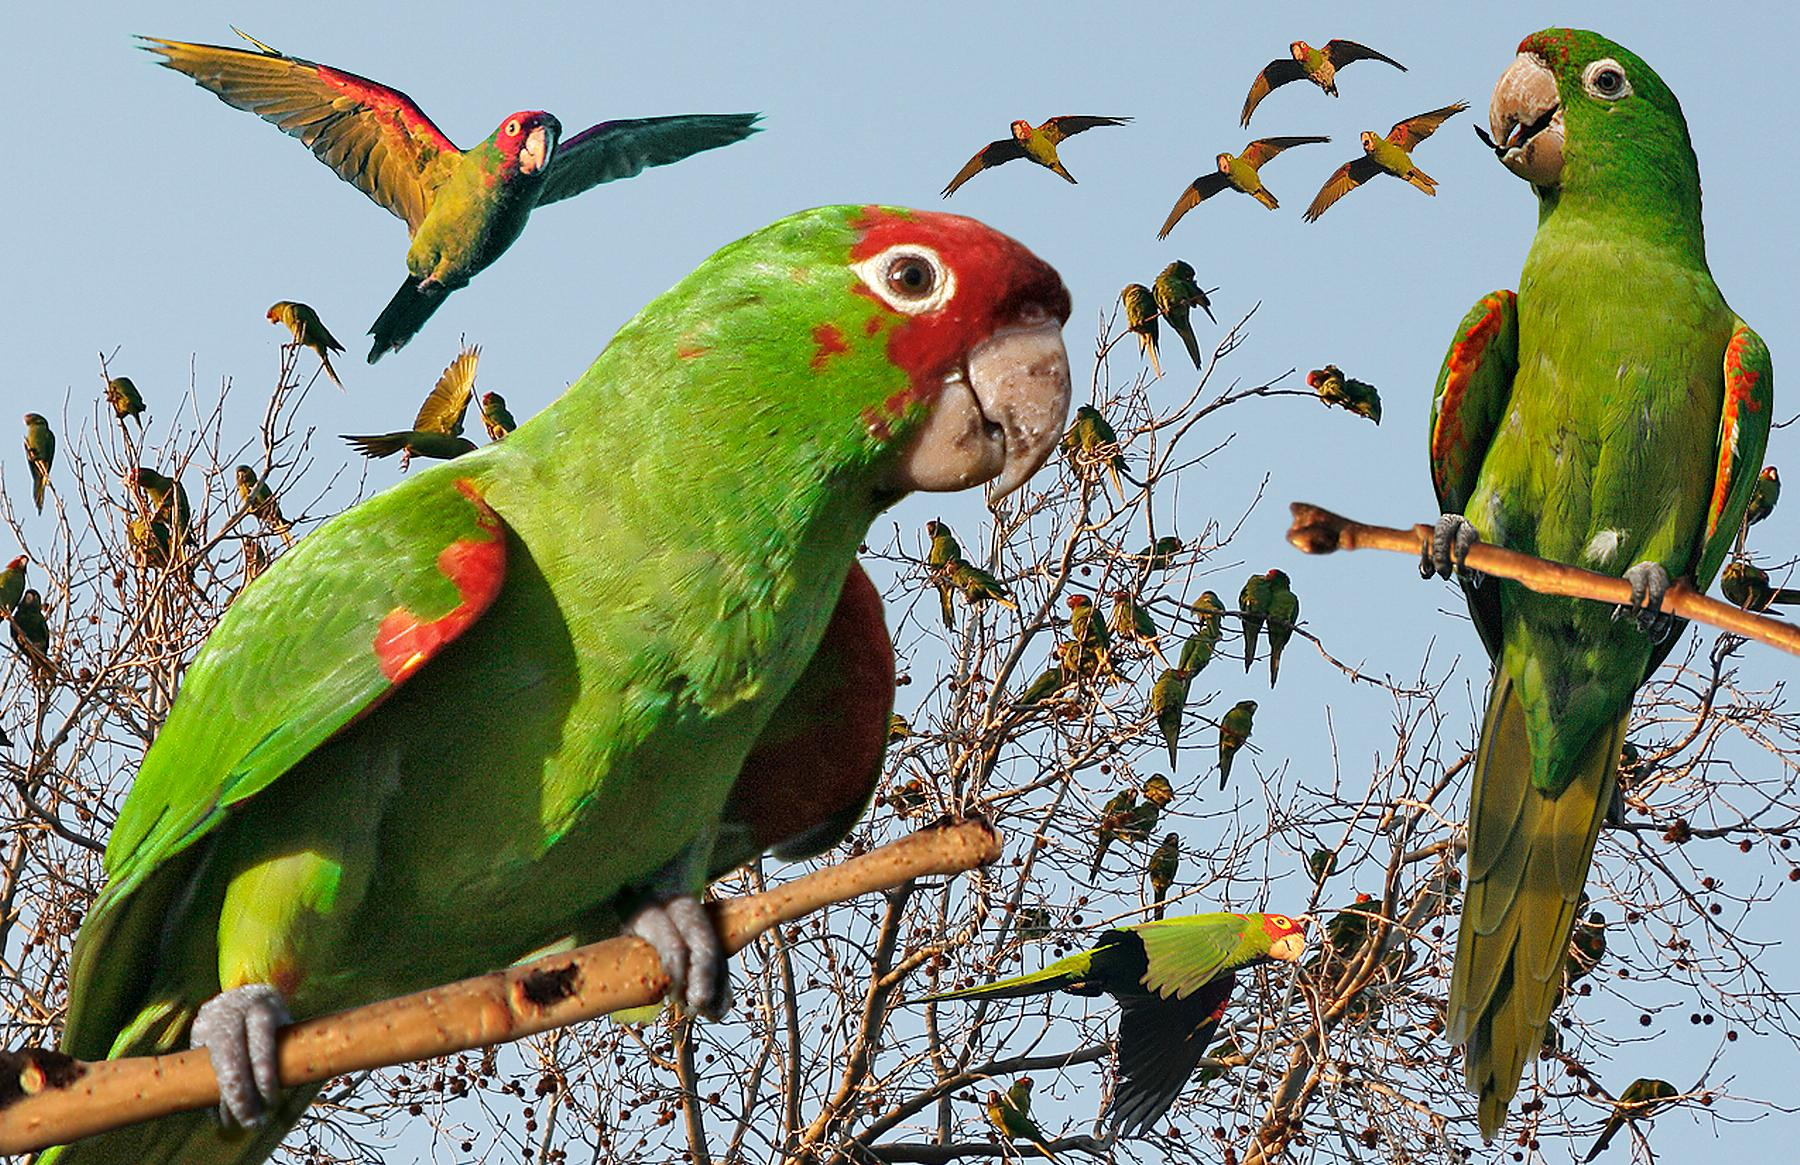 Red-masked_Parakeet_from_The_Crossley_ID_Guide_Eastern_Birds.jpg